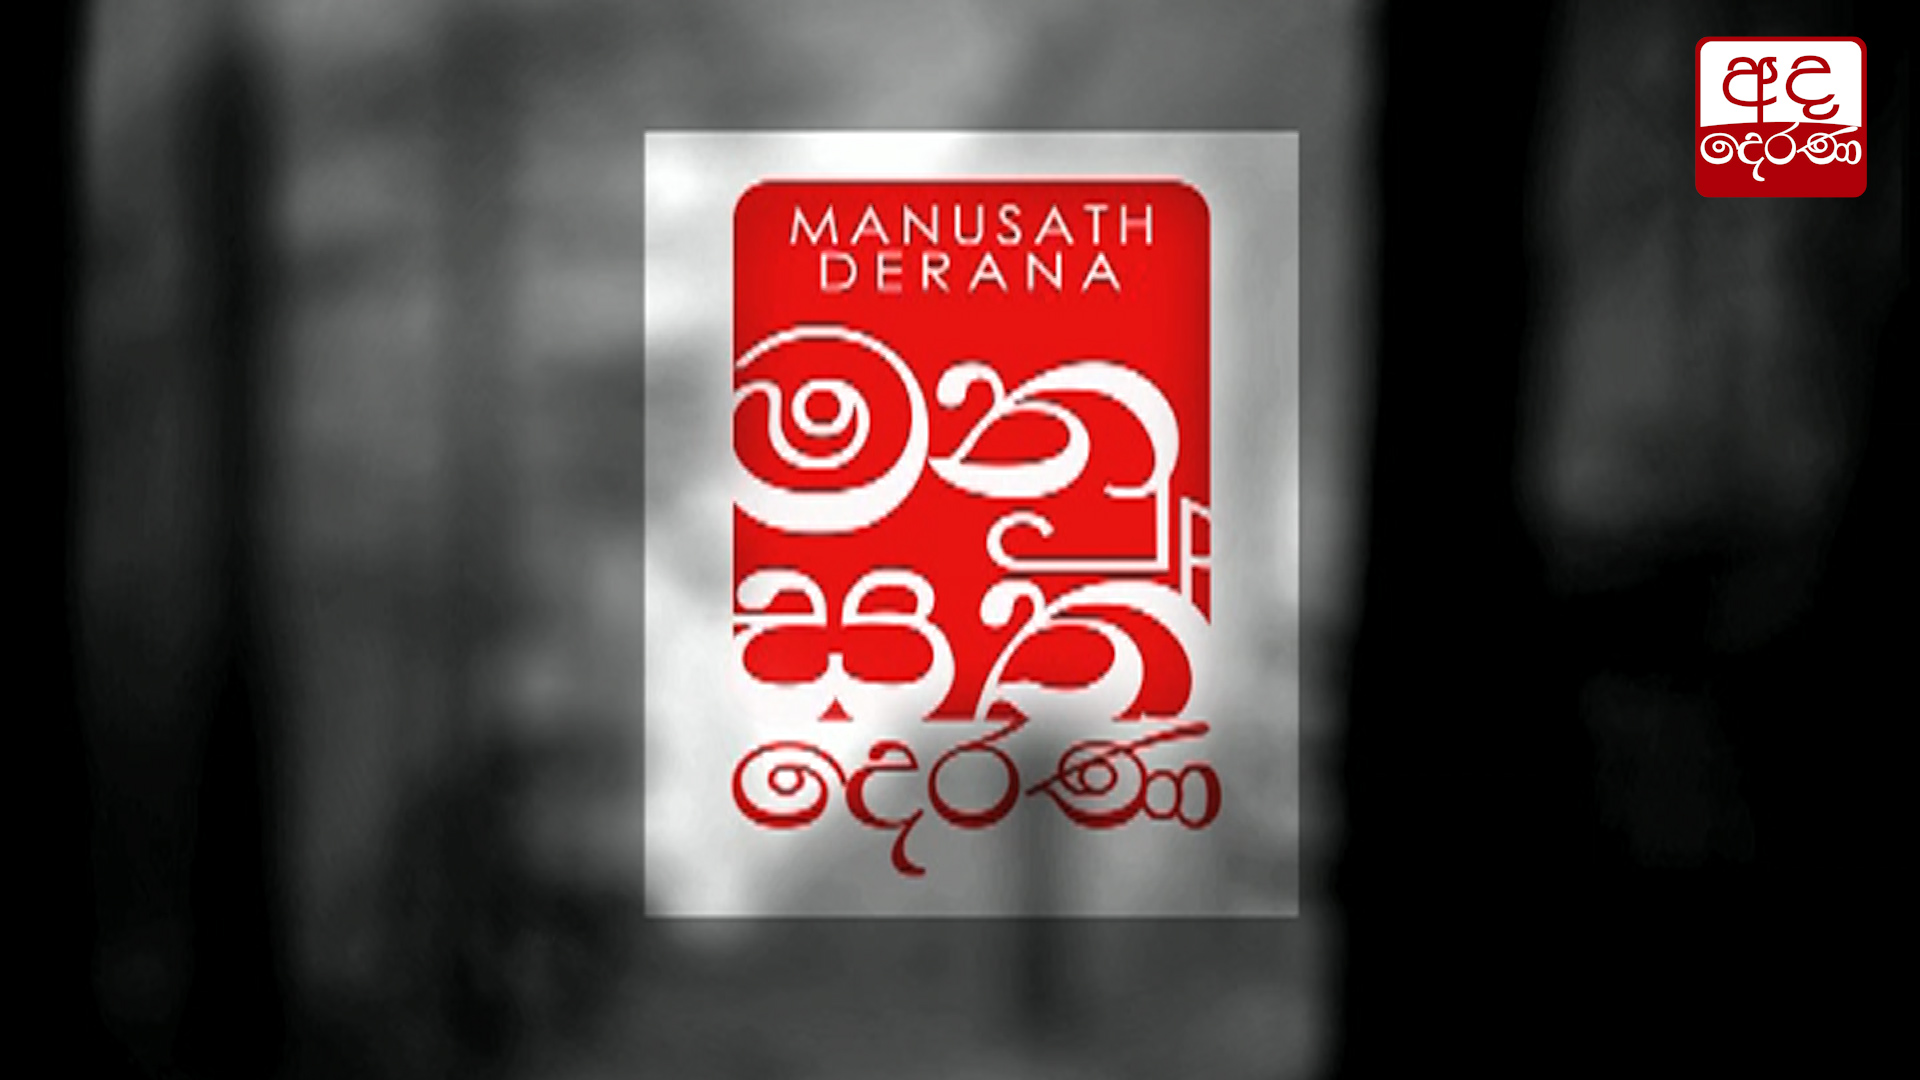 Manusath Derana continues efforts to provide relief to the needy